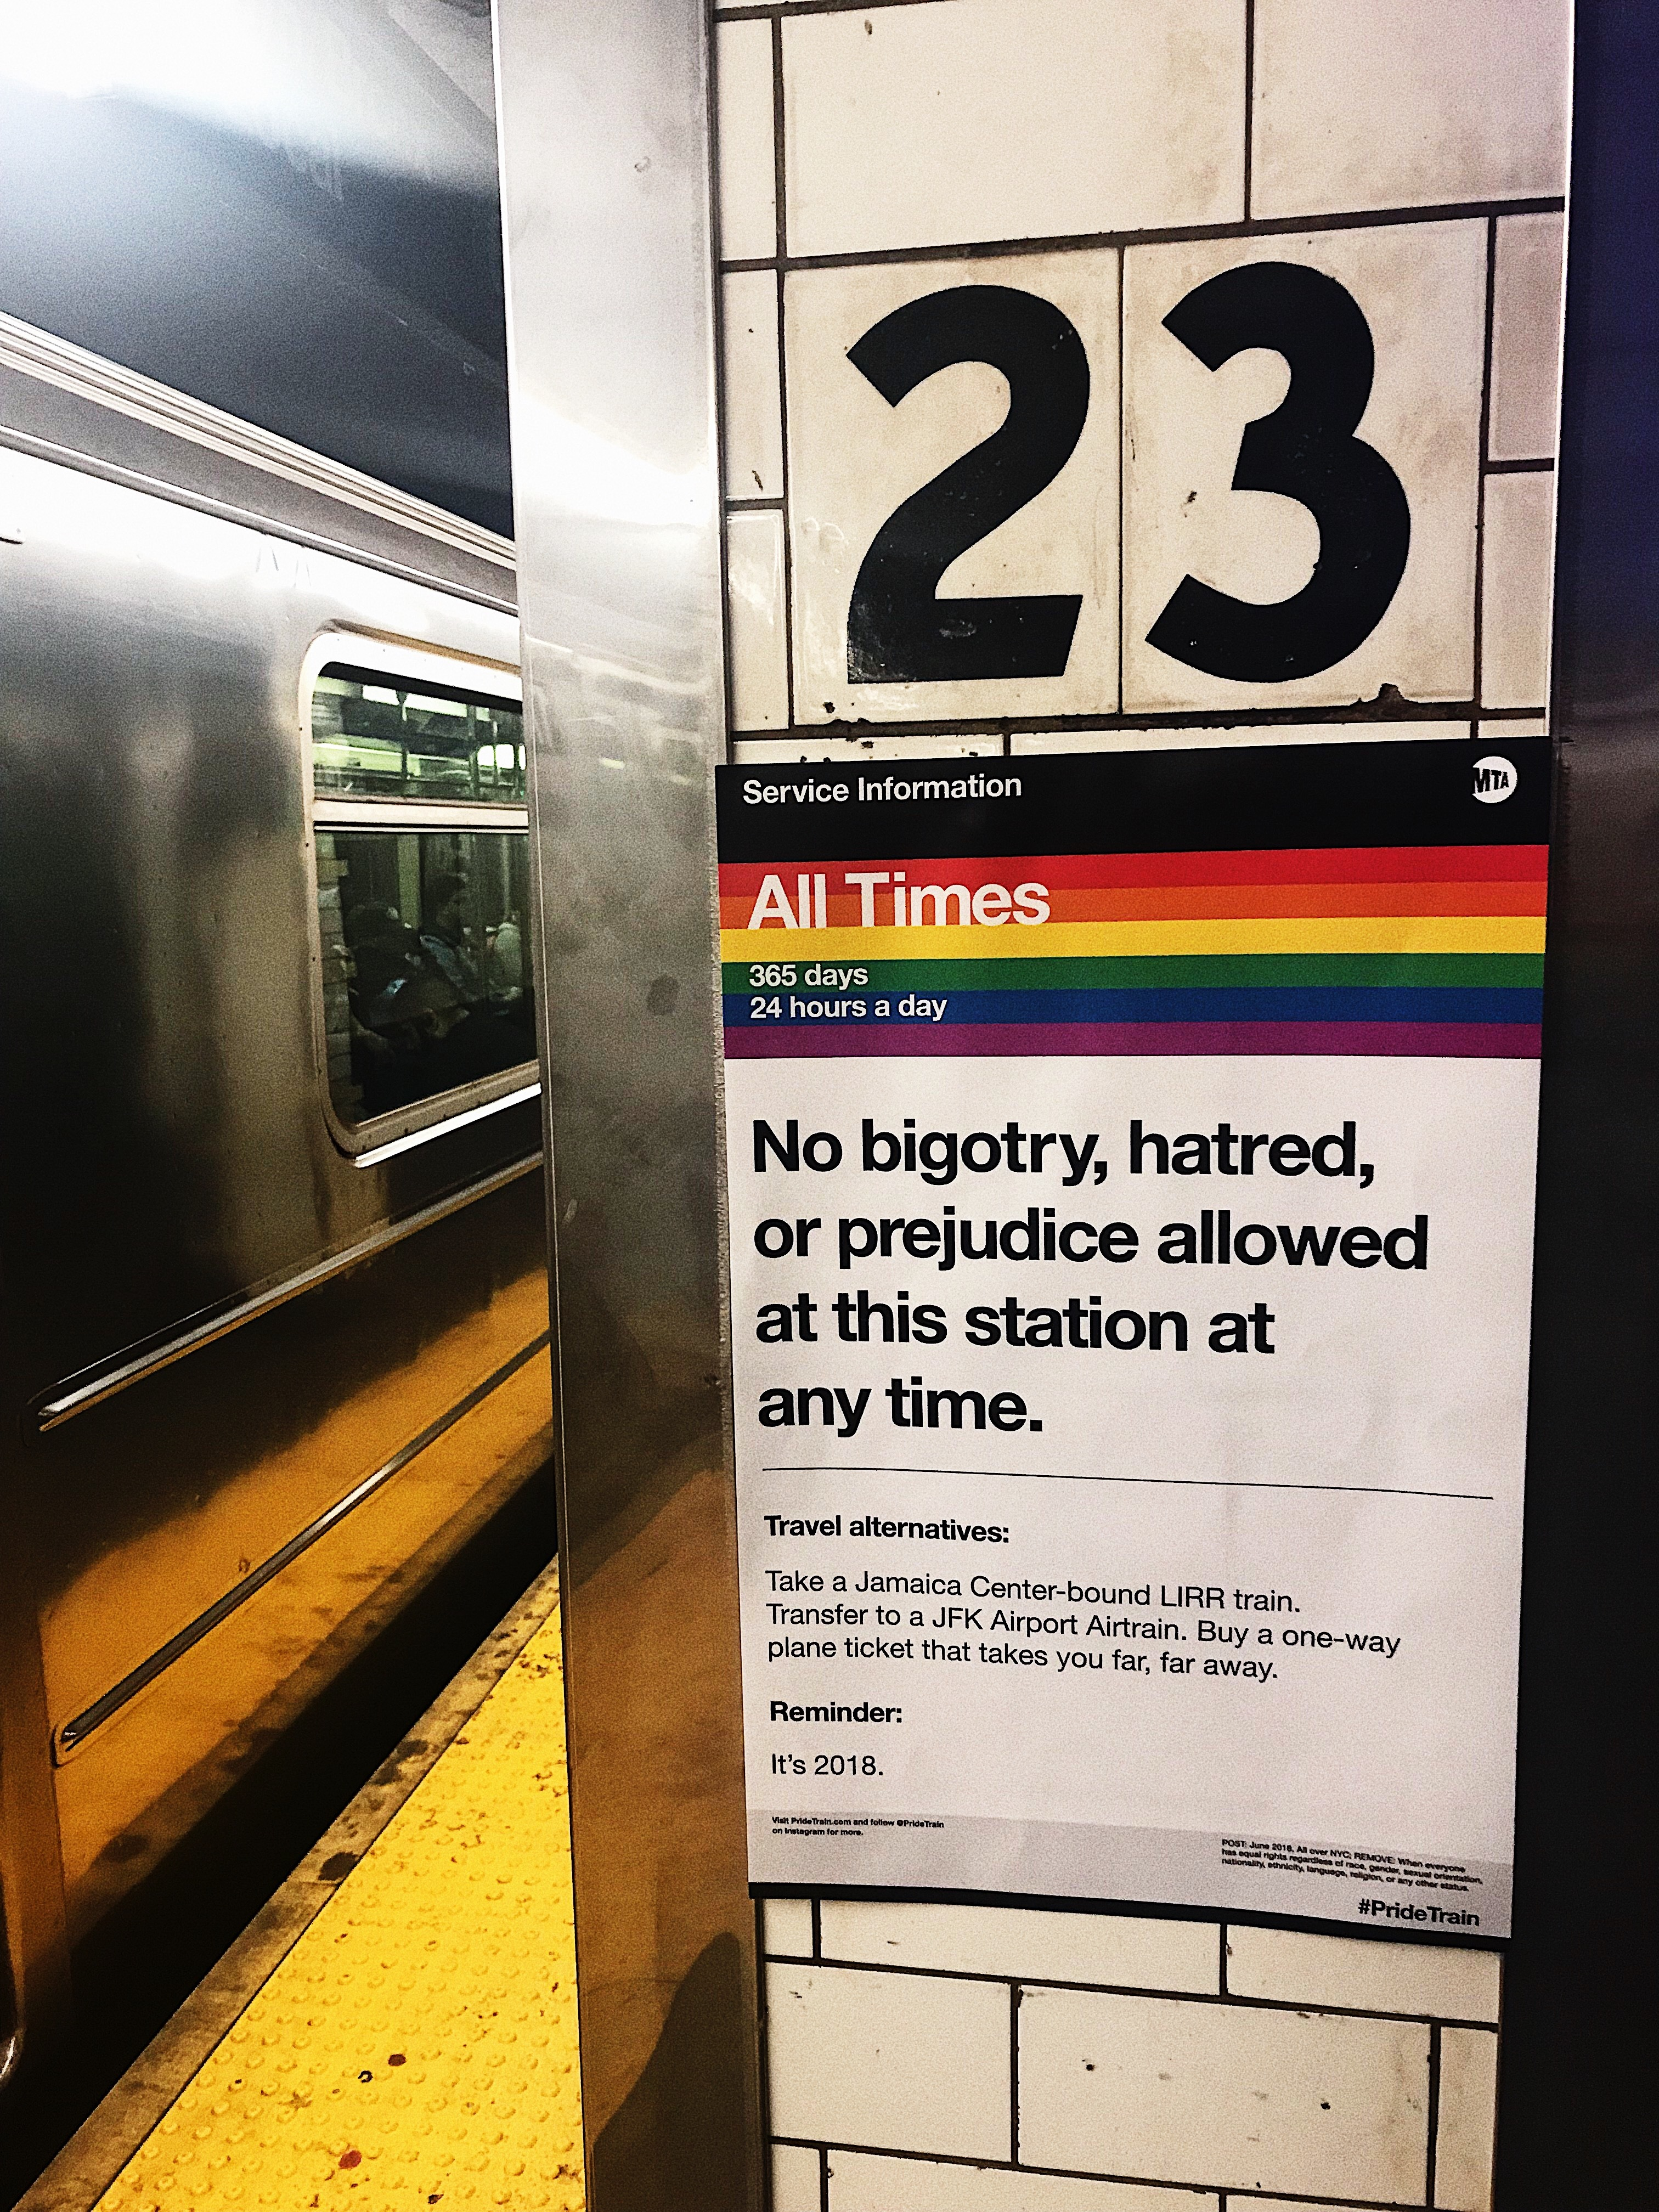 A Pride Train poster at the 23rd street R/W stop